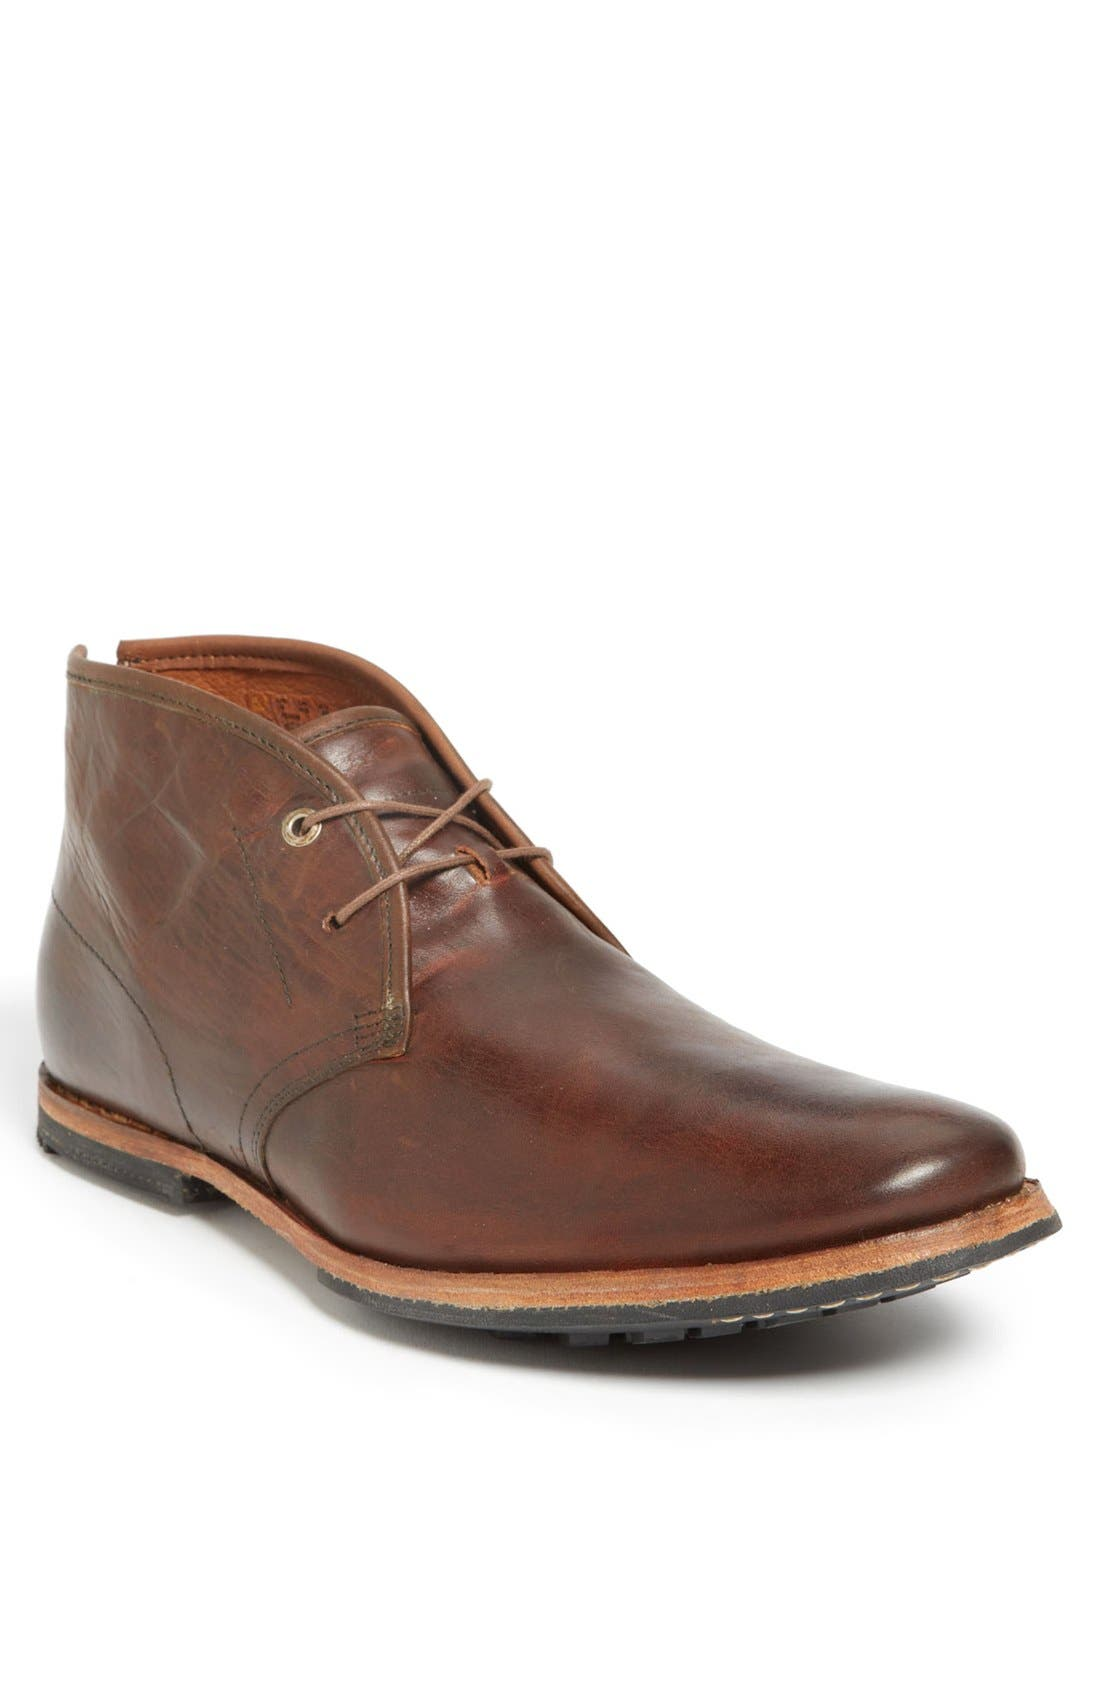 Wodehouse History Chukka Boot,                         Main,                         color, BURNISHED DARK BROWN LEATHER